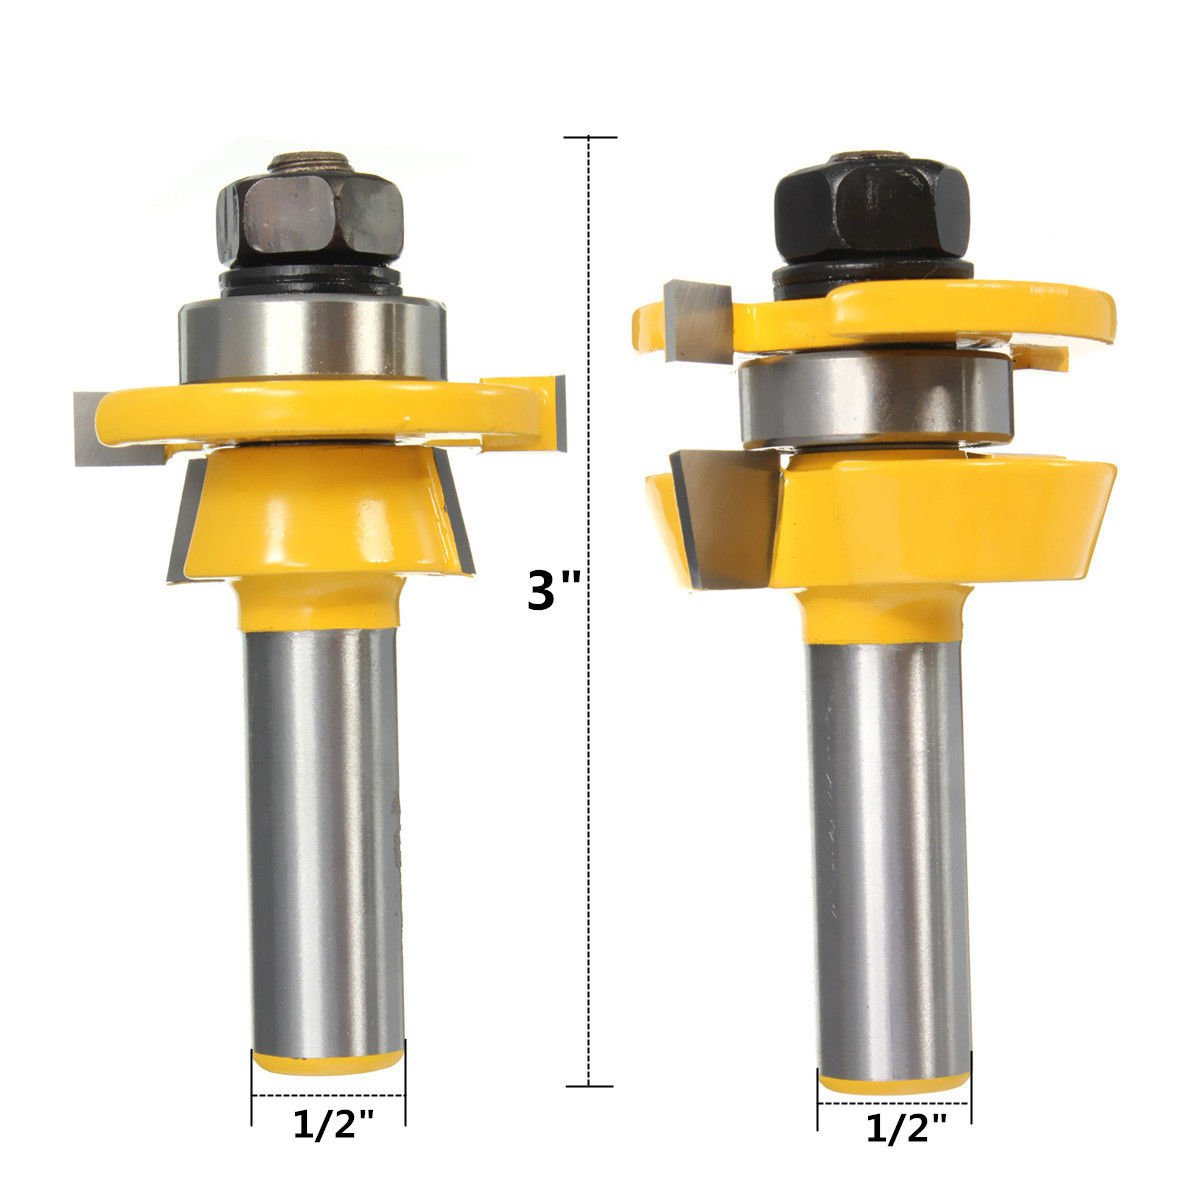 2Pcs Rail & Stile Router Bit 1/2'' Shank Shaker Woodworking Chisel Cutter Set